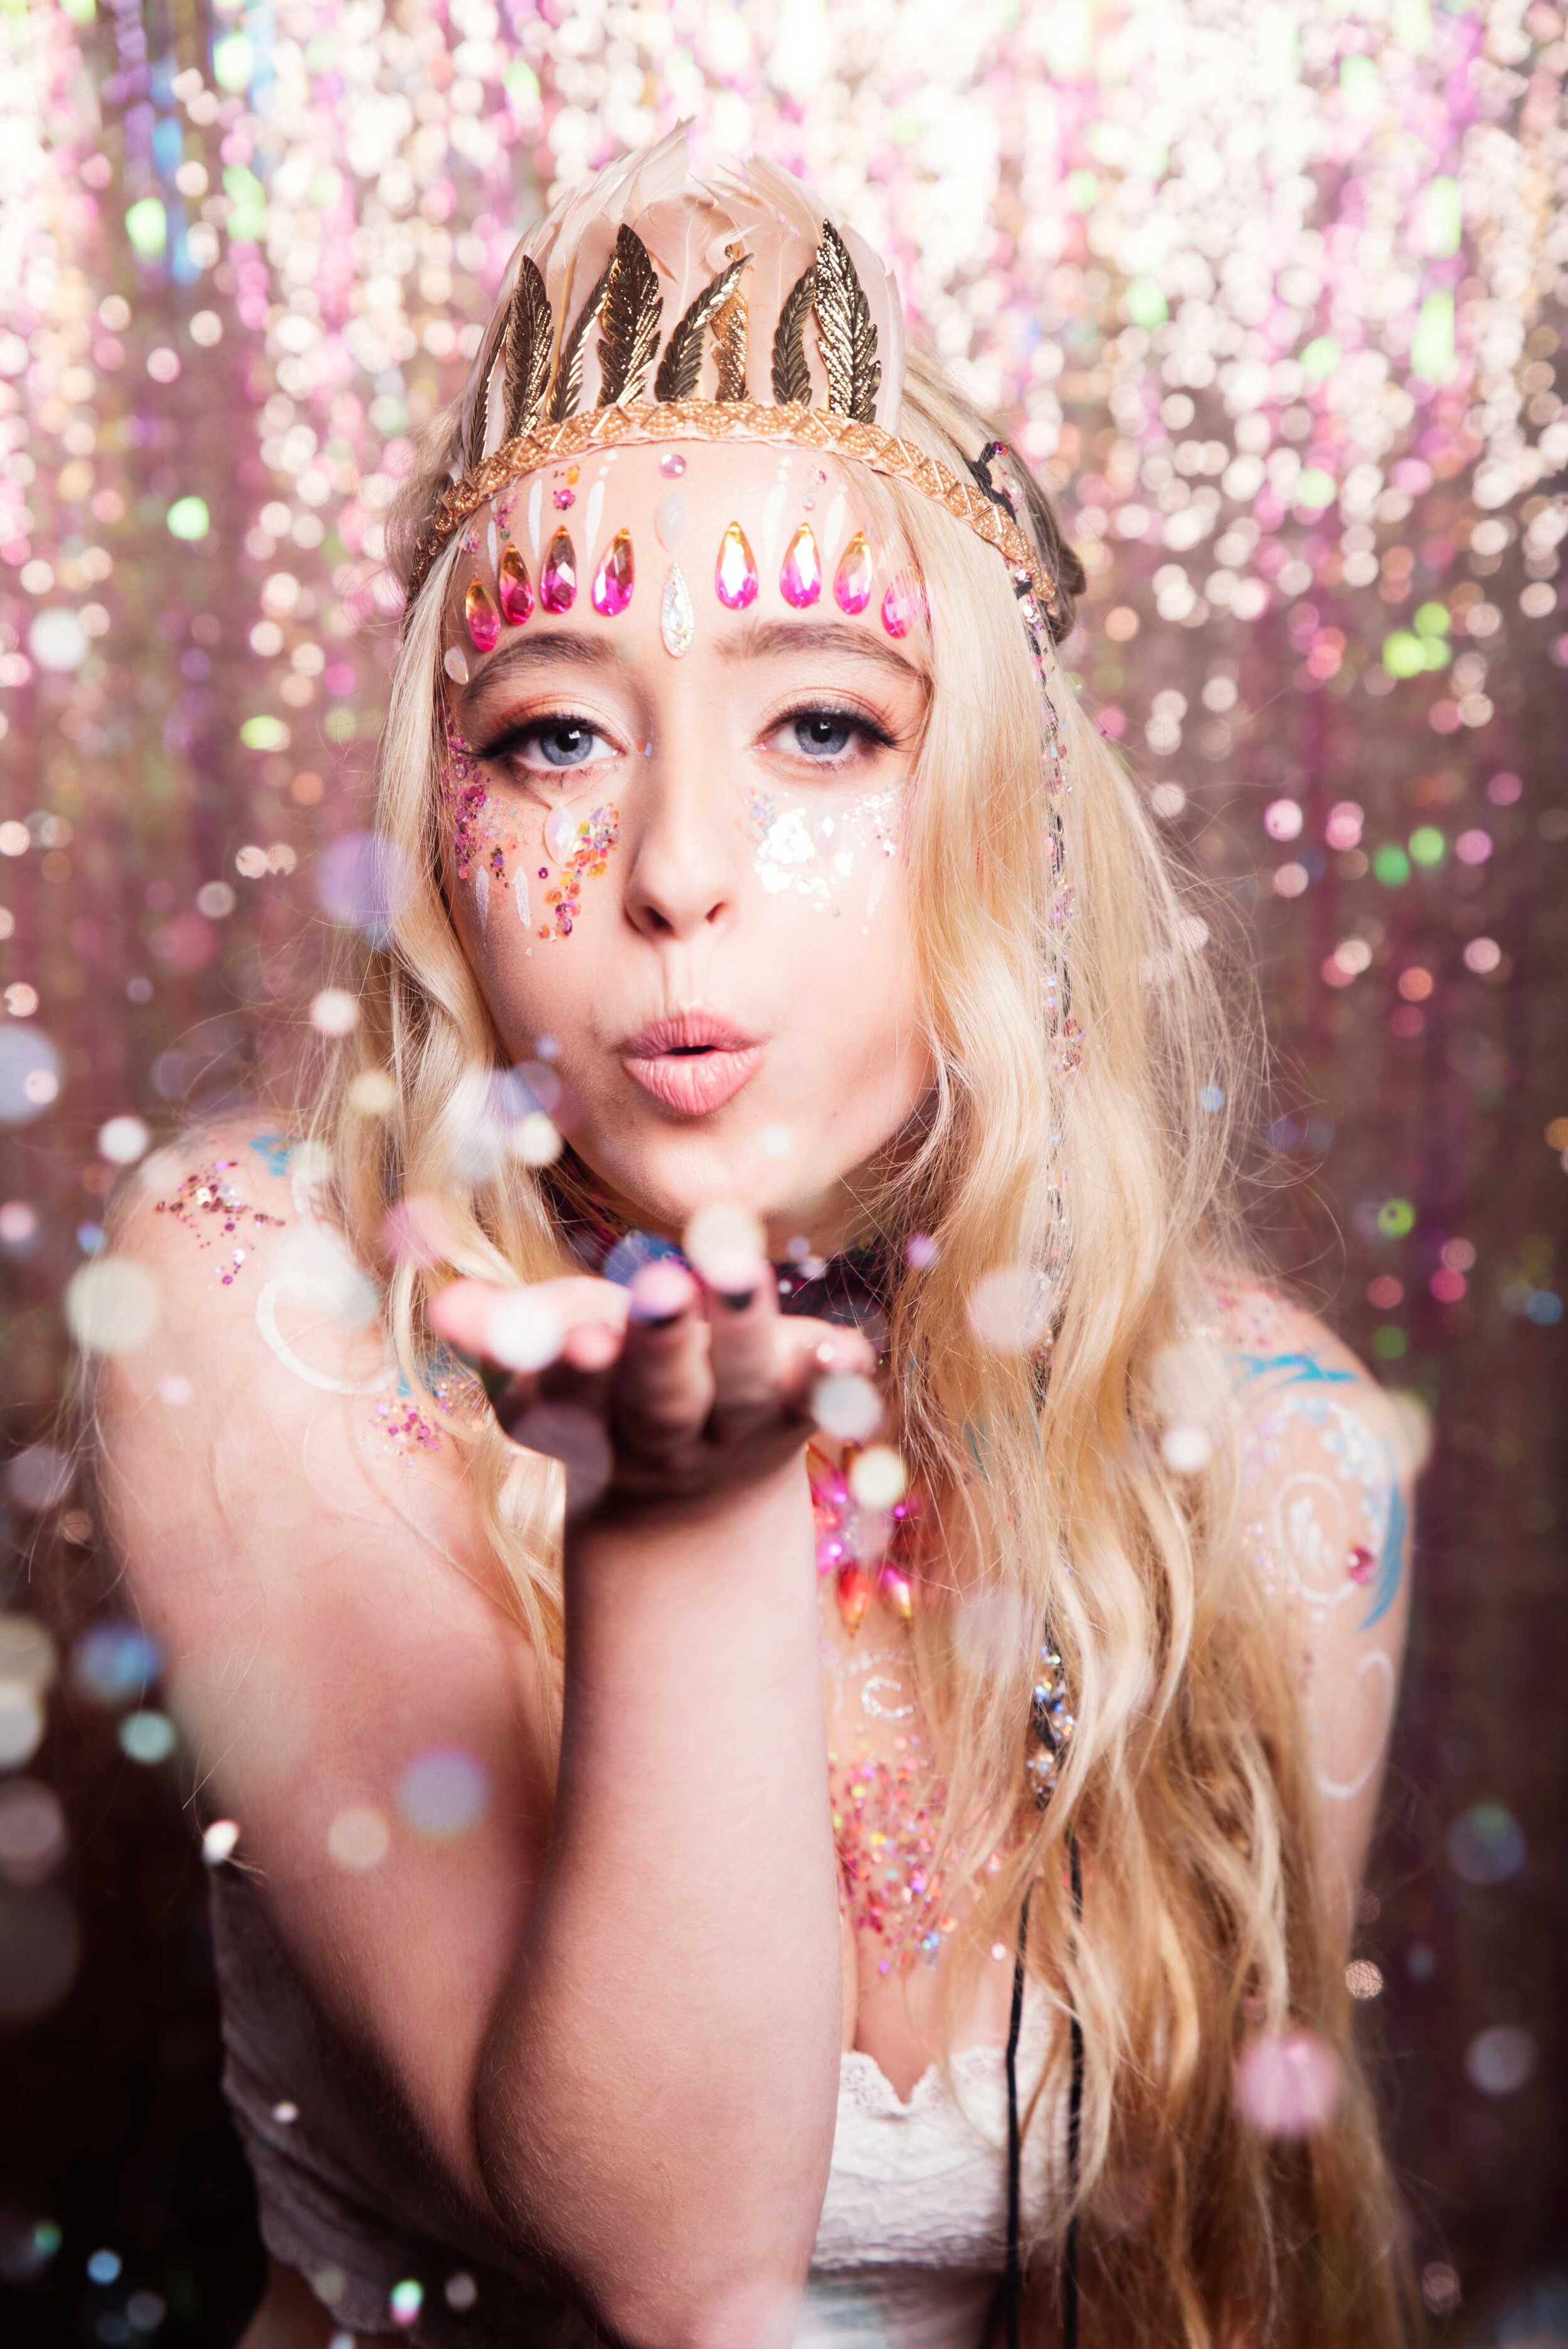 THE LOVEMOI GLITTER BAR - Have our talented Glitter Team set up at your wedding, festival, hen do, ball or corporate event where we'll glitter everyone who comes our way!Talk to us about our custom packages, designed to fit in with the theme of your event.